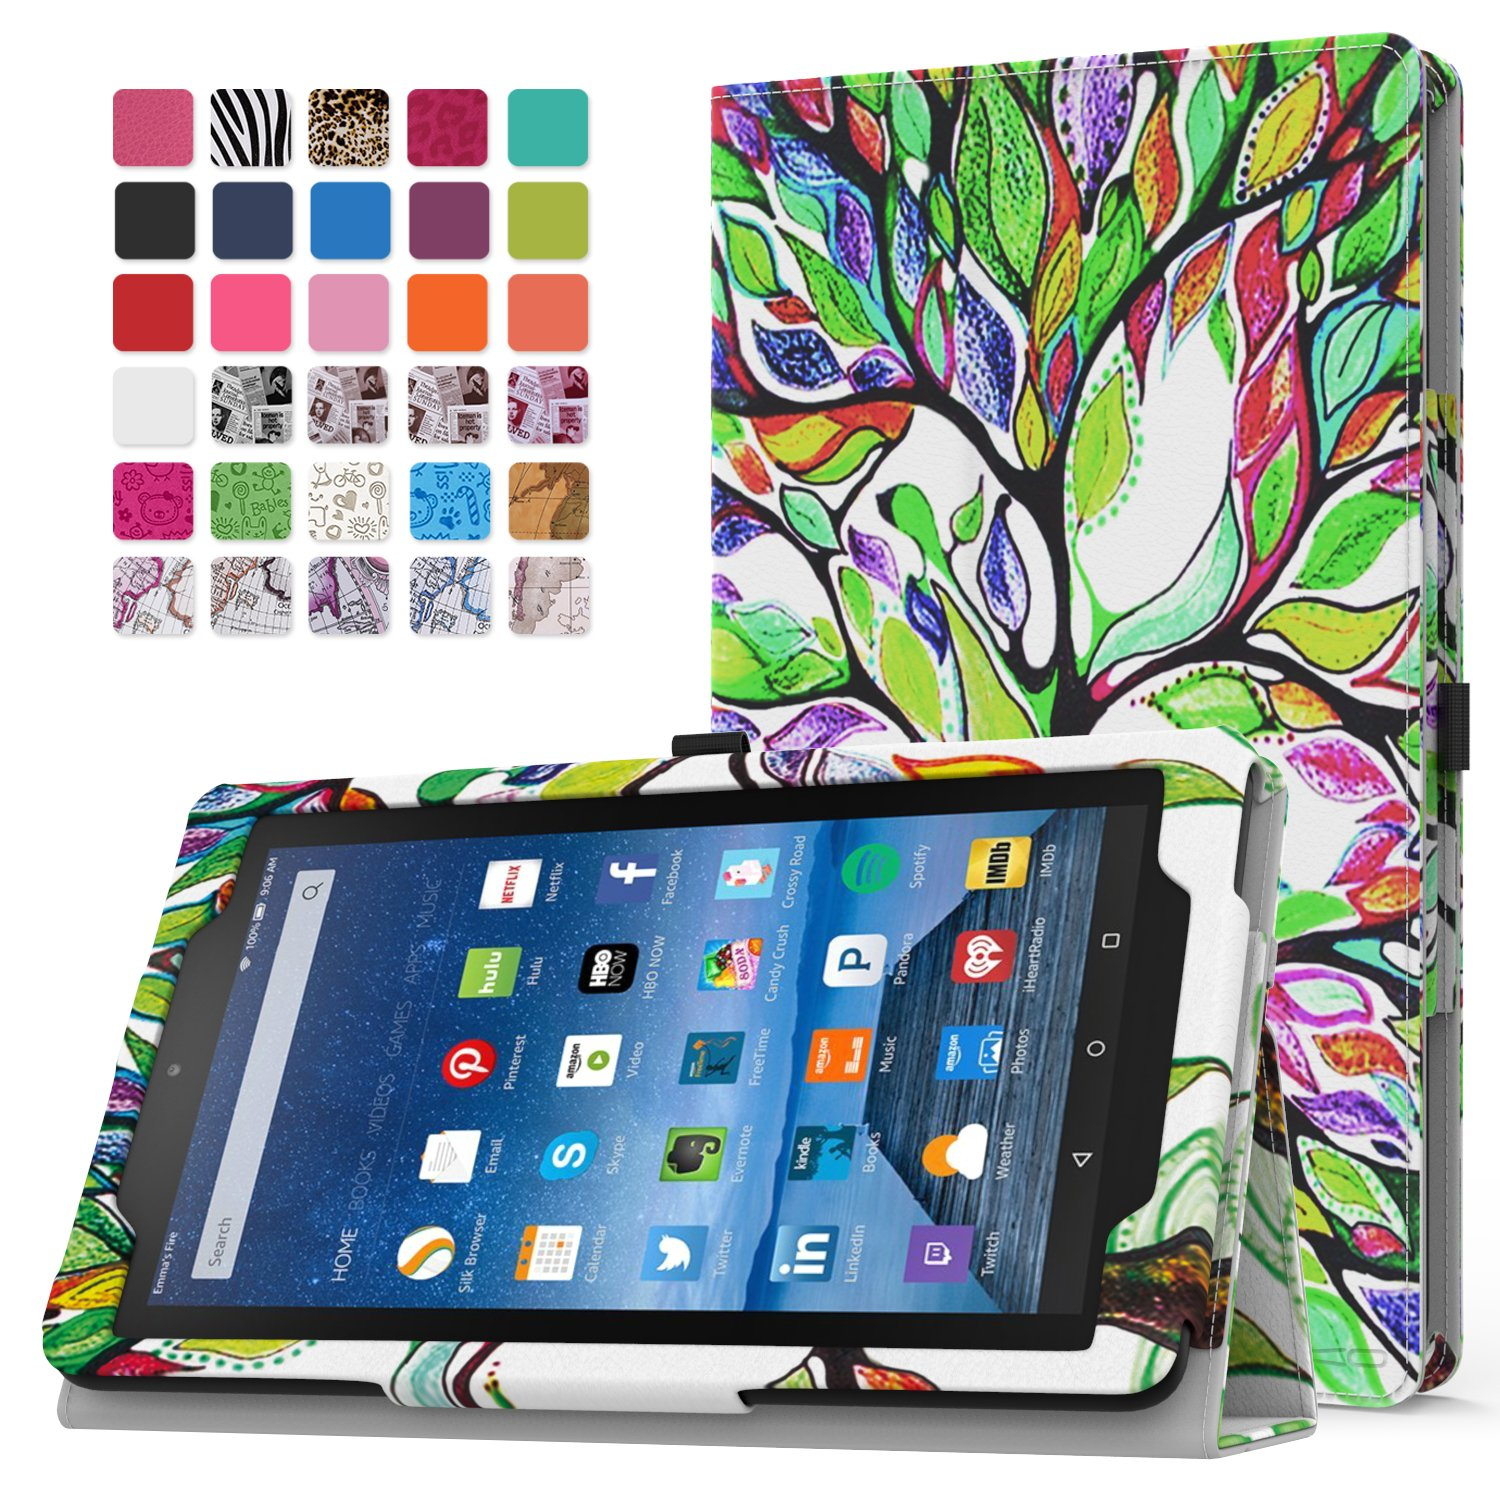 MoKo Fire 7 2015 Case - Slim Folding Cover for Amazon Fire Tablet (7 inch Display - 5th Generation, 2015 Release Only), Lucky TREE